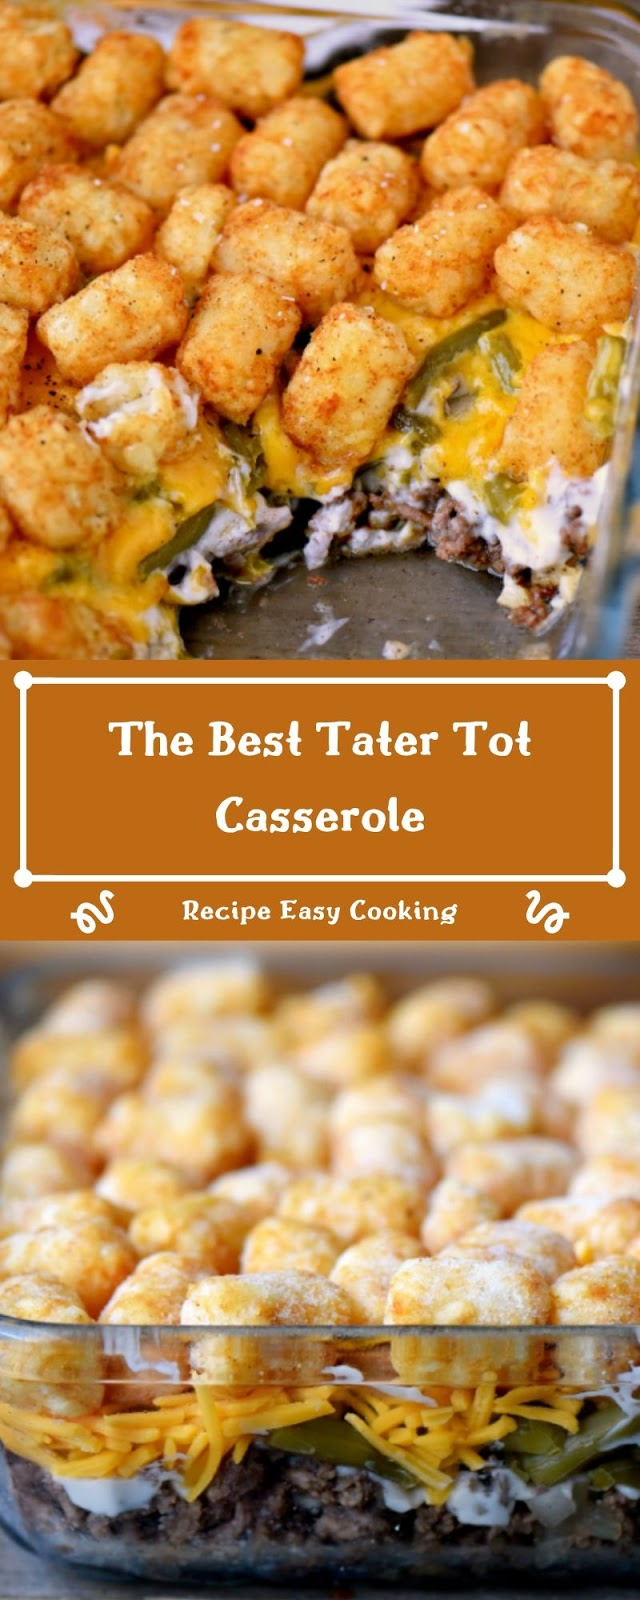 The Best Tater Tot Casserole - Recipes Easy Cooking